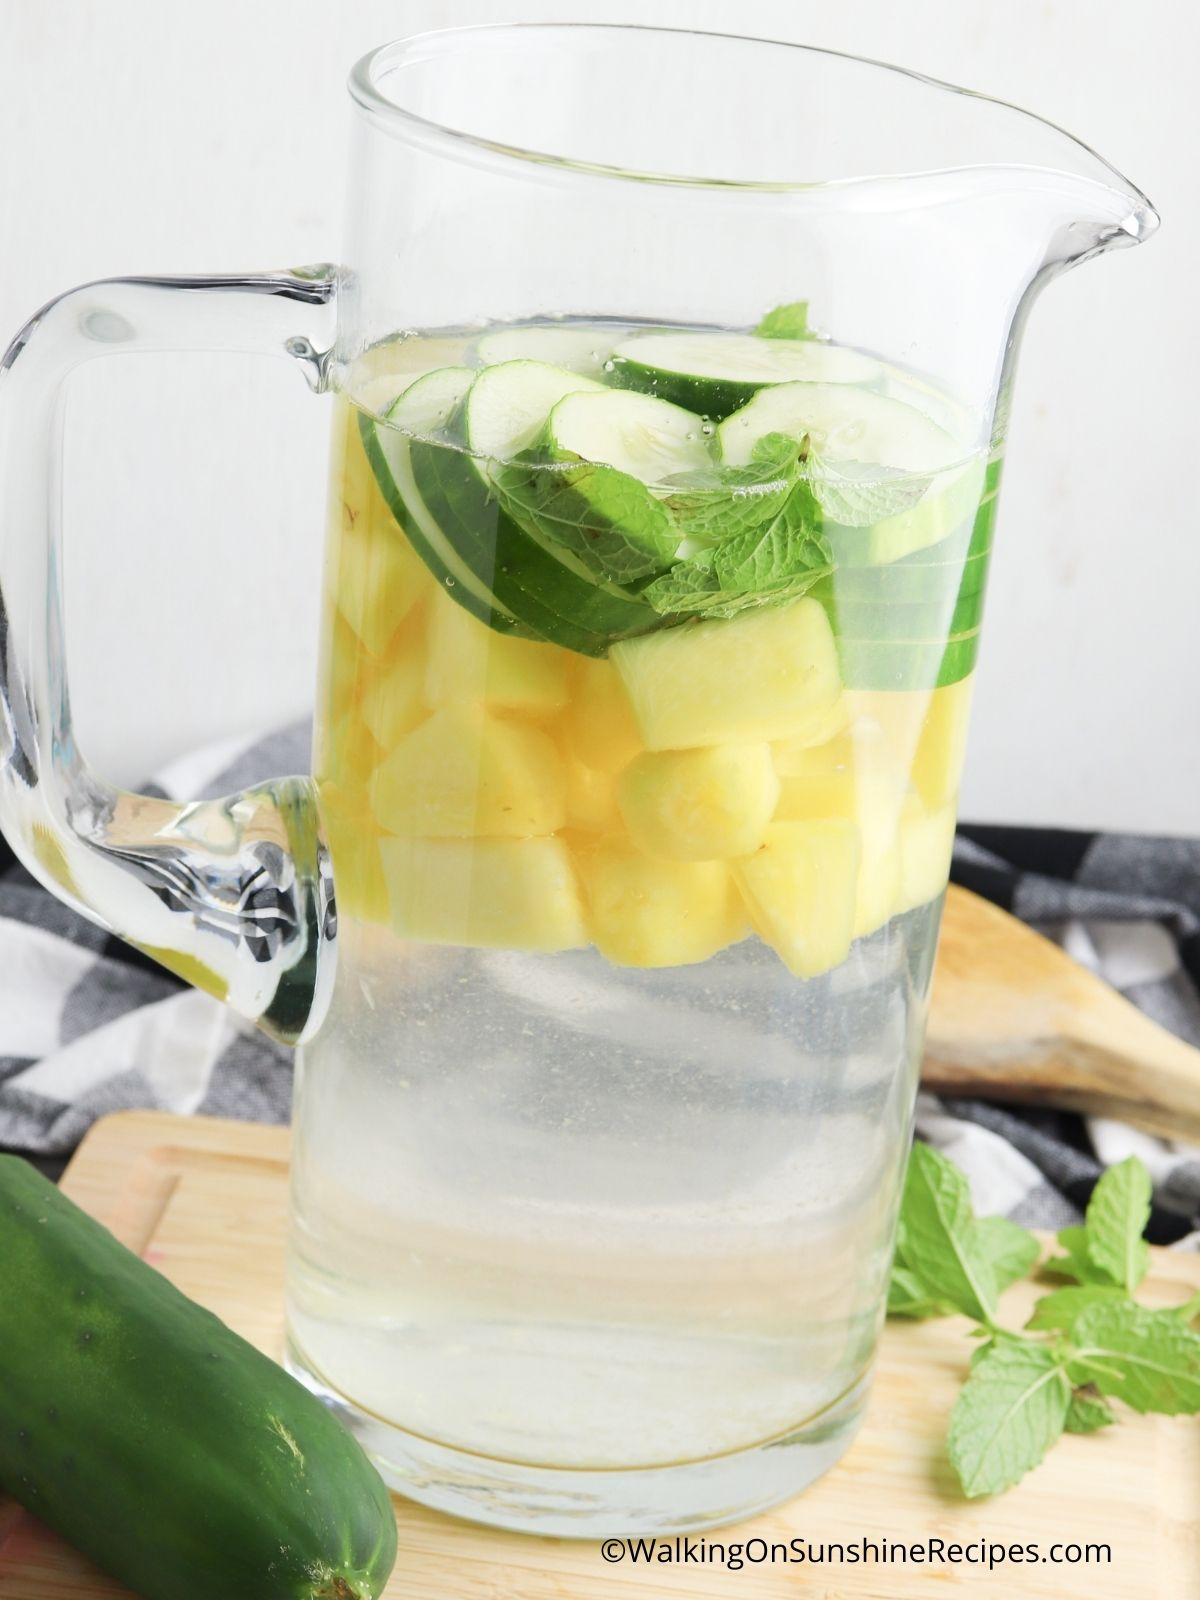 Add water to pitcher.